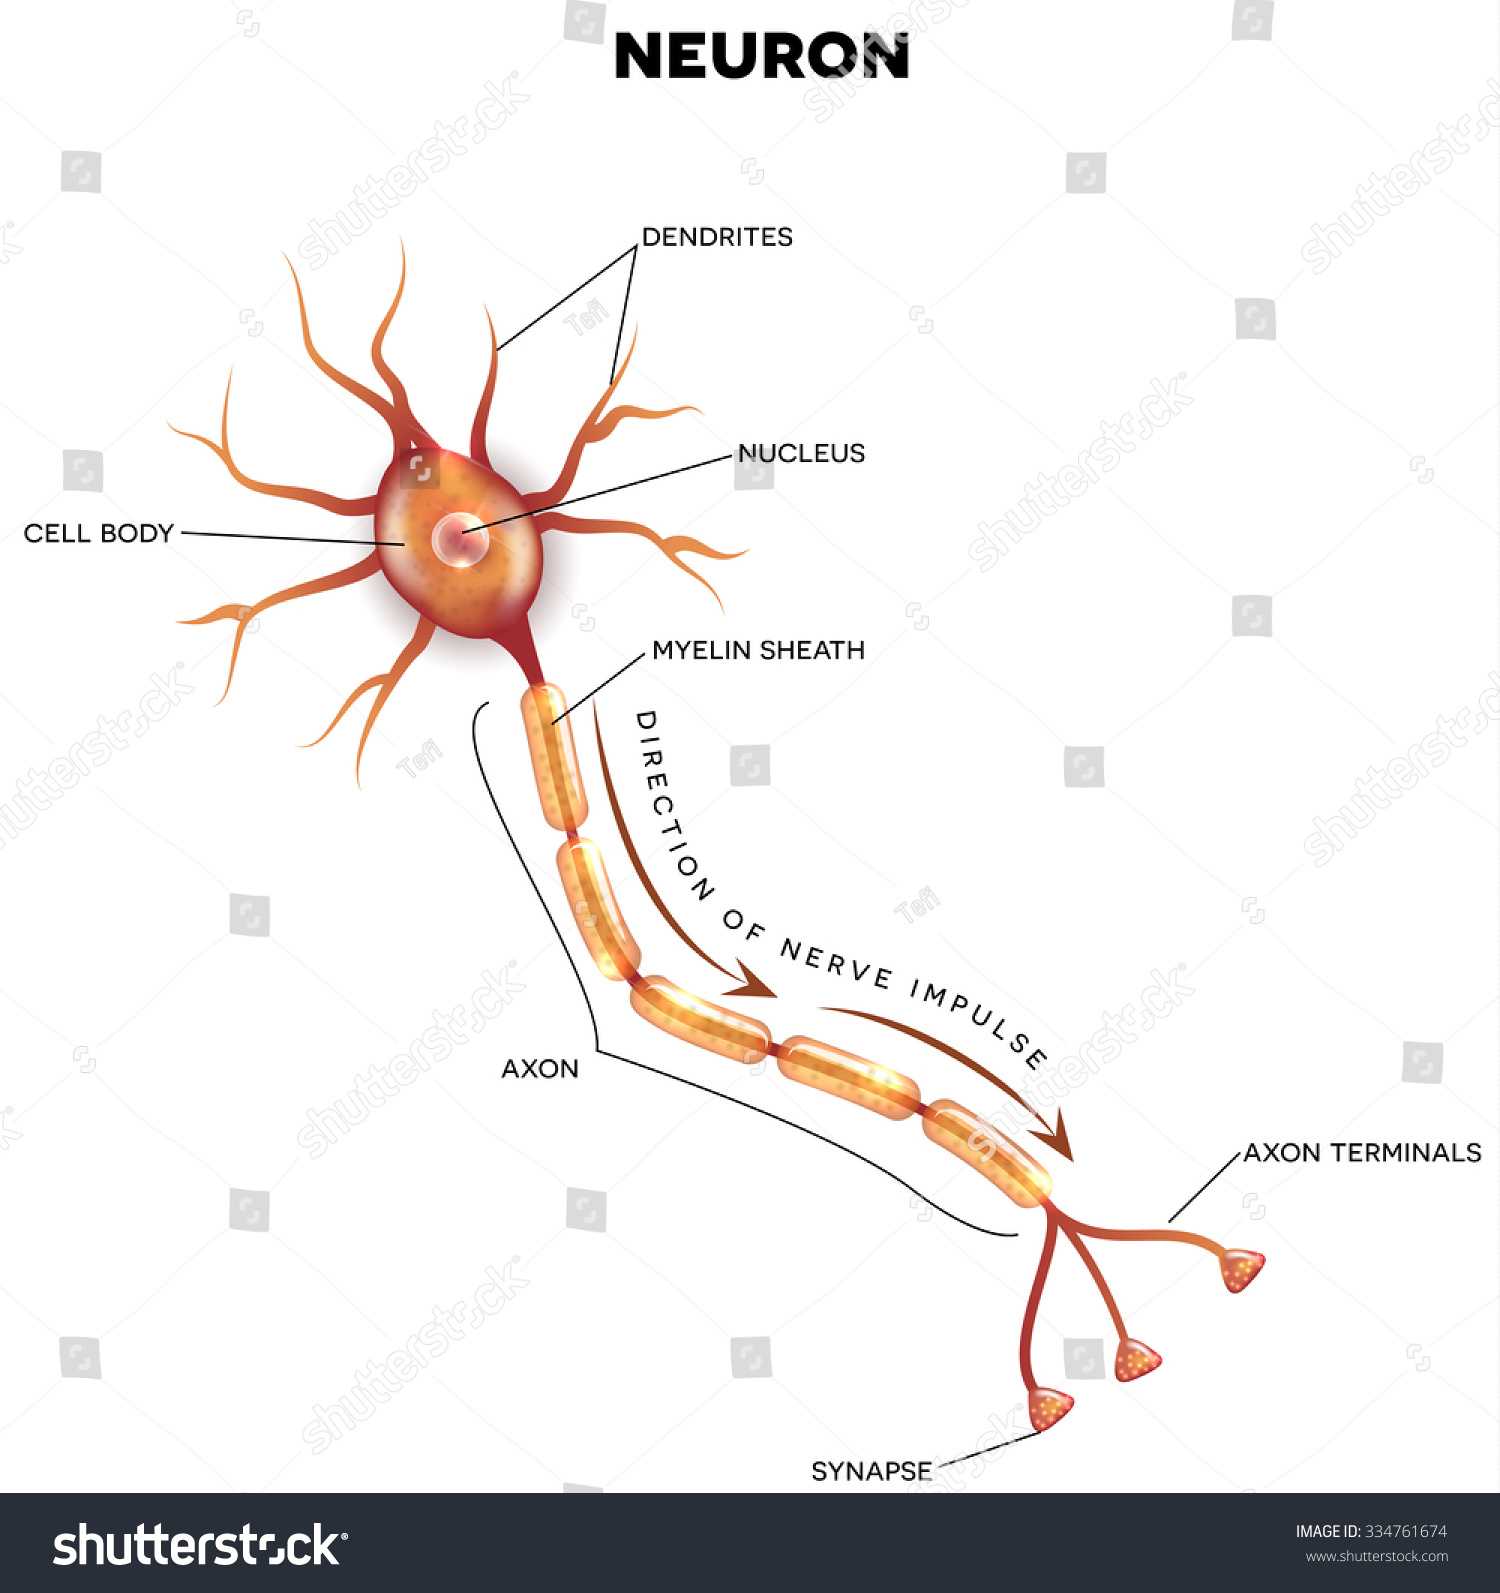 a description of the nervous system Nervous [ner´vus] 1 neural 2 unduly excitable or easily agitated nervous system the organ system that, along with the endocrine system, correlates the adjustments and reactions of an.